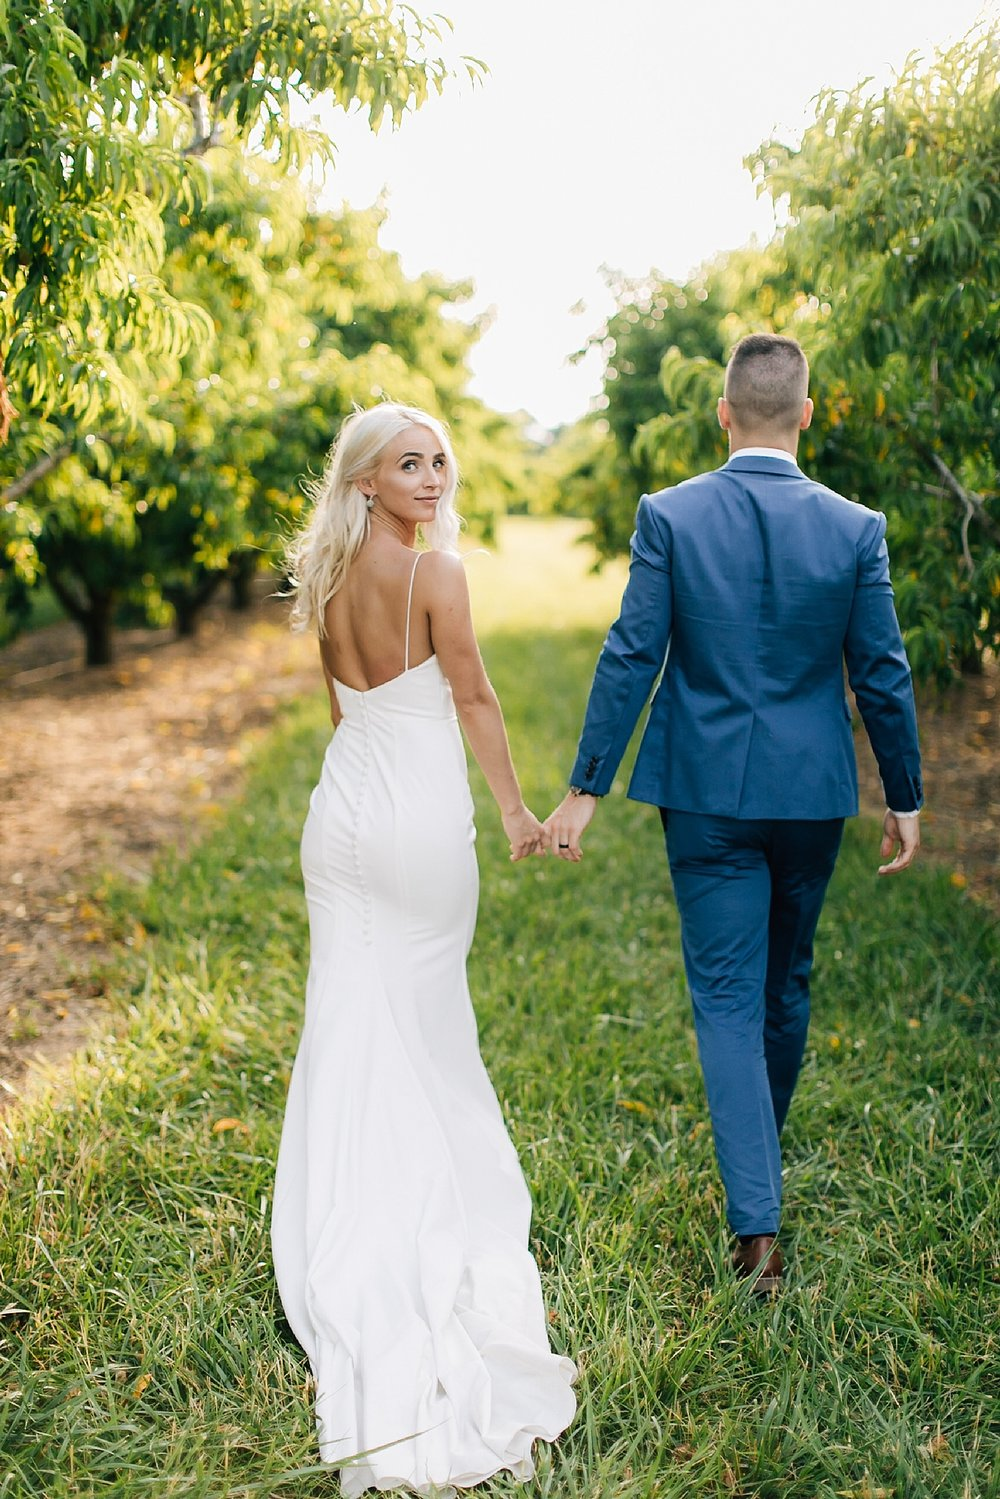 A Unique Outdoor Summer Wedding at Bast Brothers Garden Center by Magdalena Studios_0025.jpg